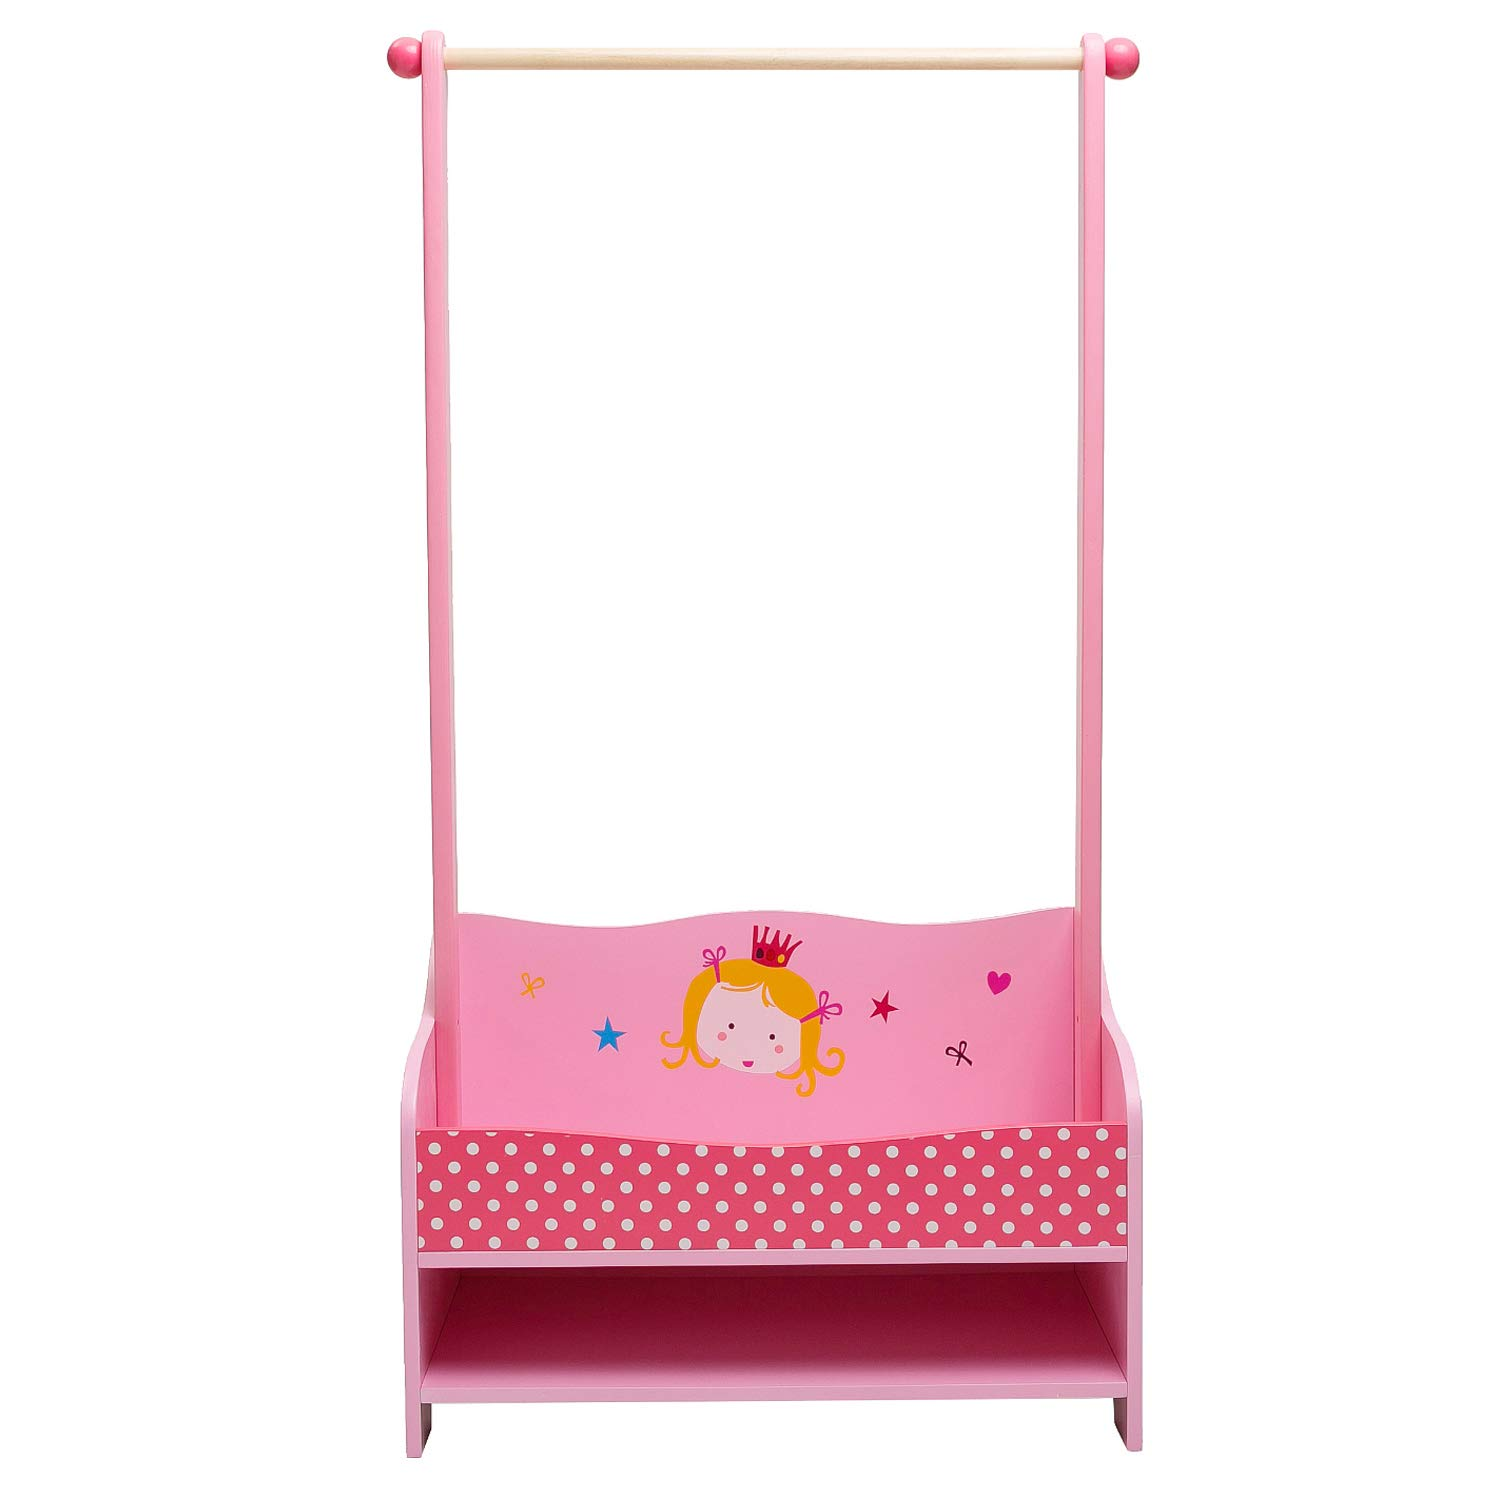 ❤[ Clearance-$5 ] labebe 3-in-1 Pink Baby Clothes Rack, Baby Garment Rack in Wood for Girls of 2-5 Years, Kid Clothes Rack Shelf/Boutique Clothes Rack Organize/Girl Clothes Rack Stand/Storage Rack